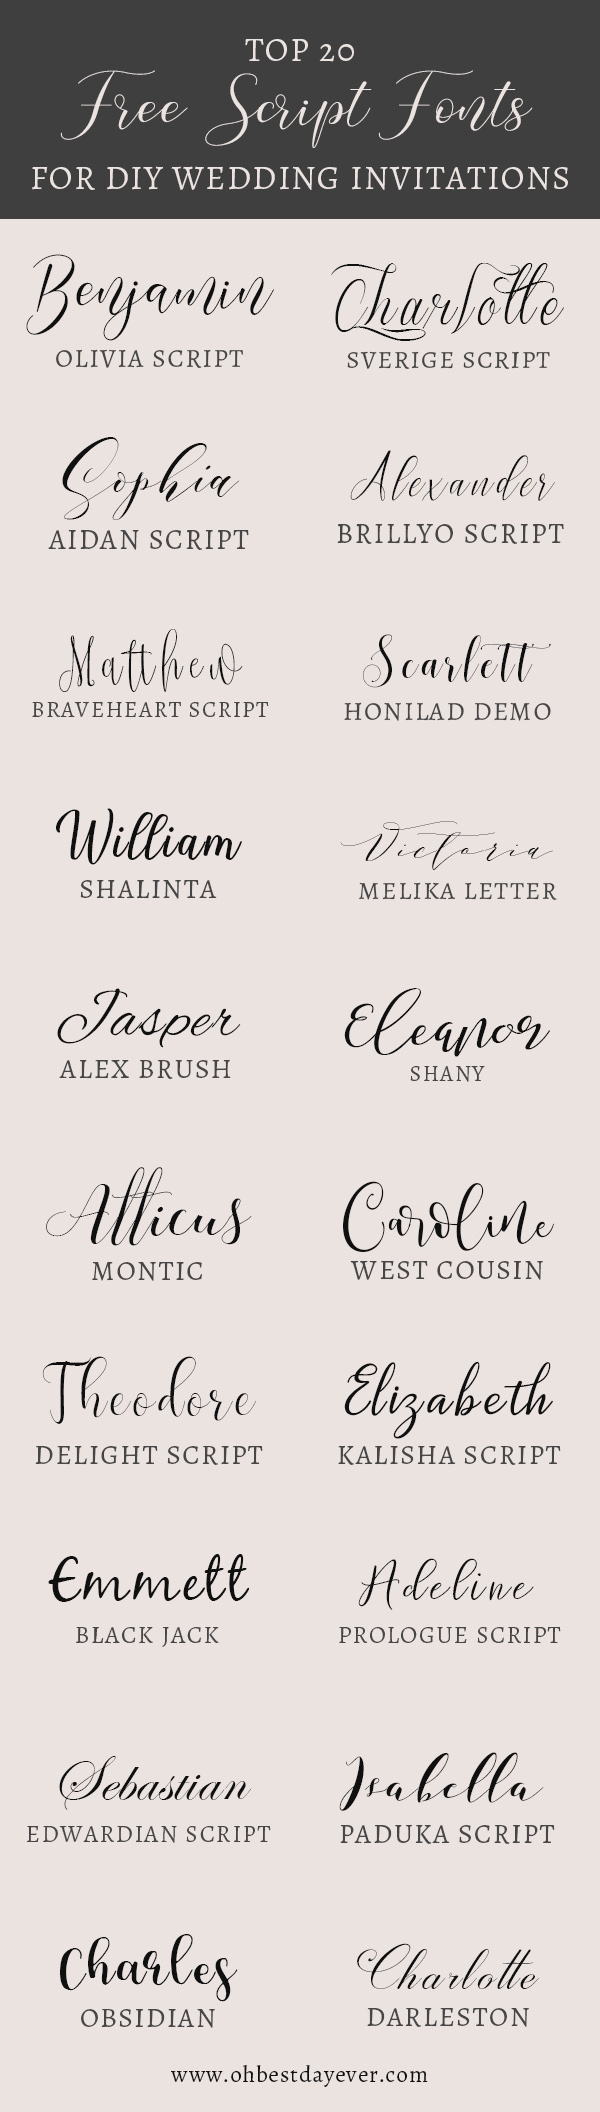 20 free script fonts for diy wedding invitations